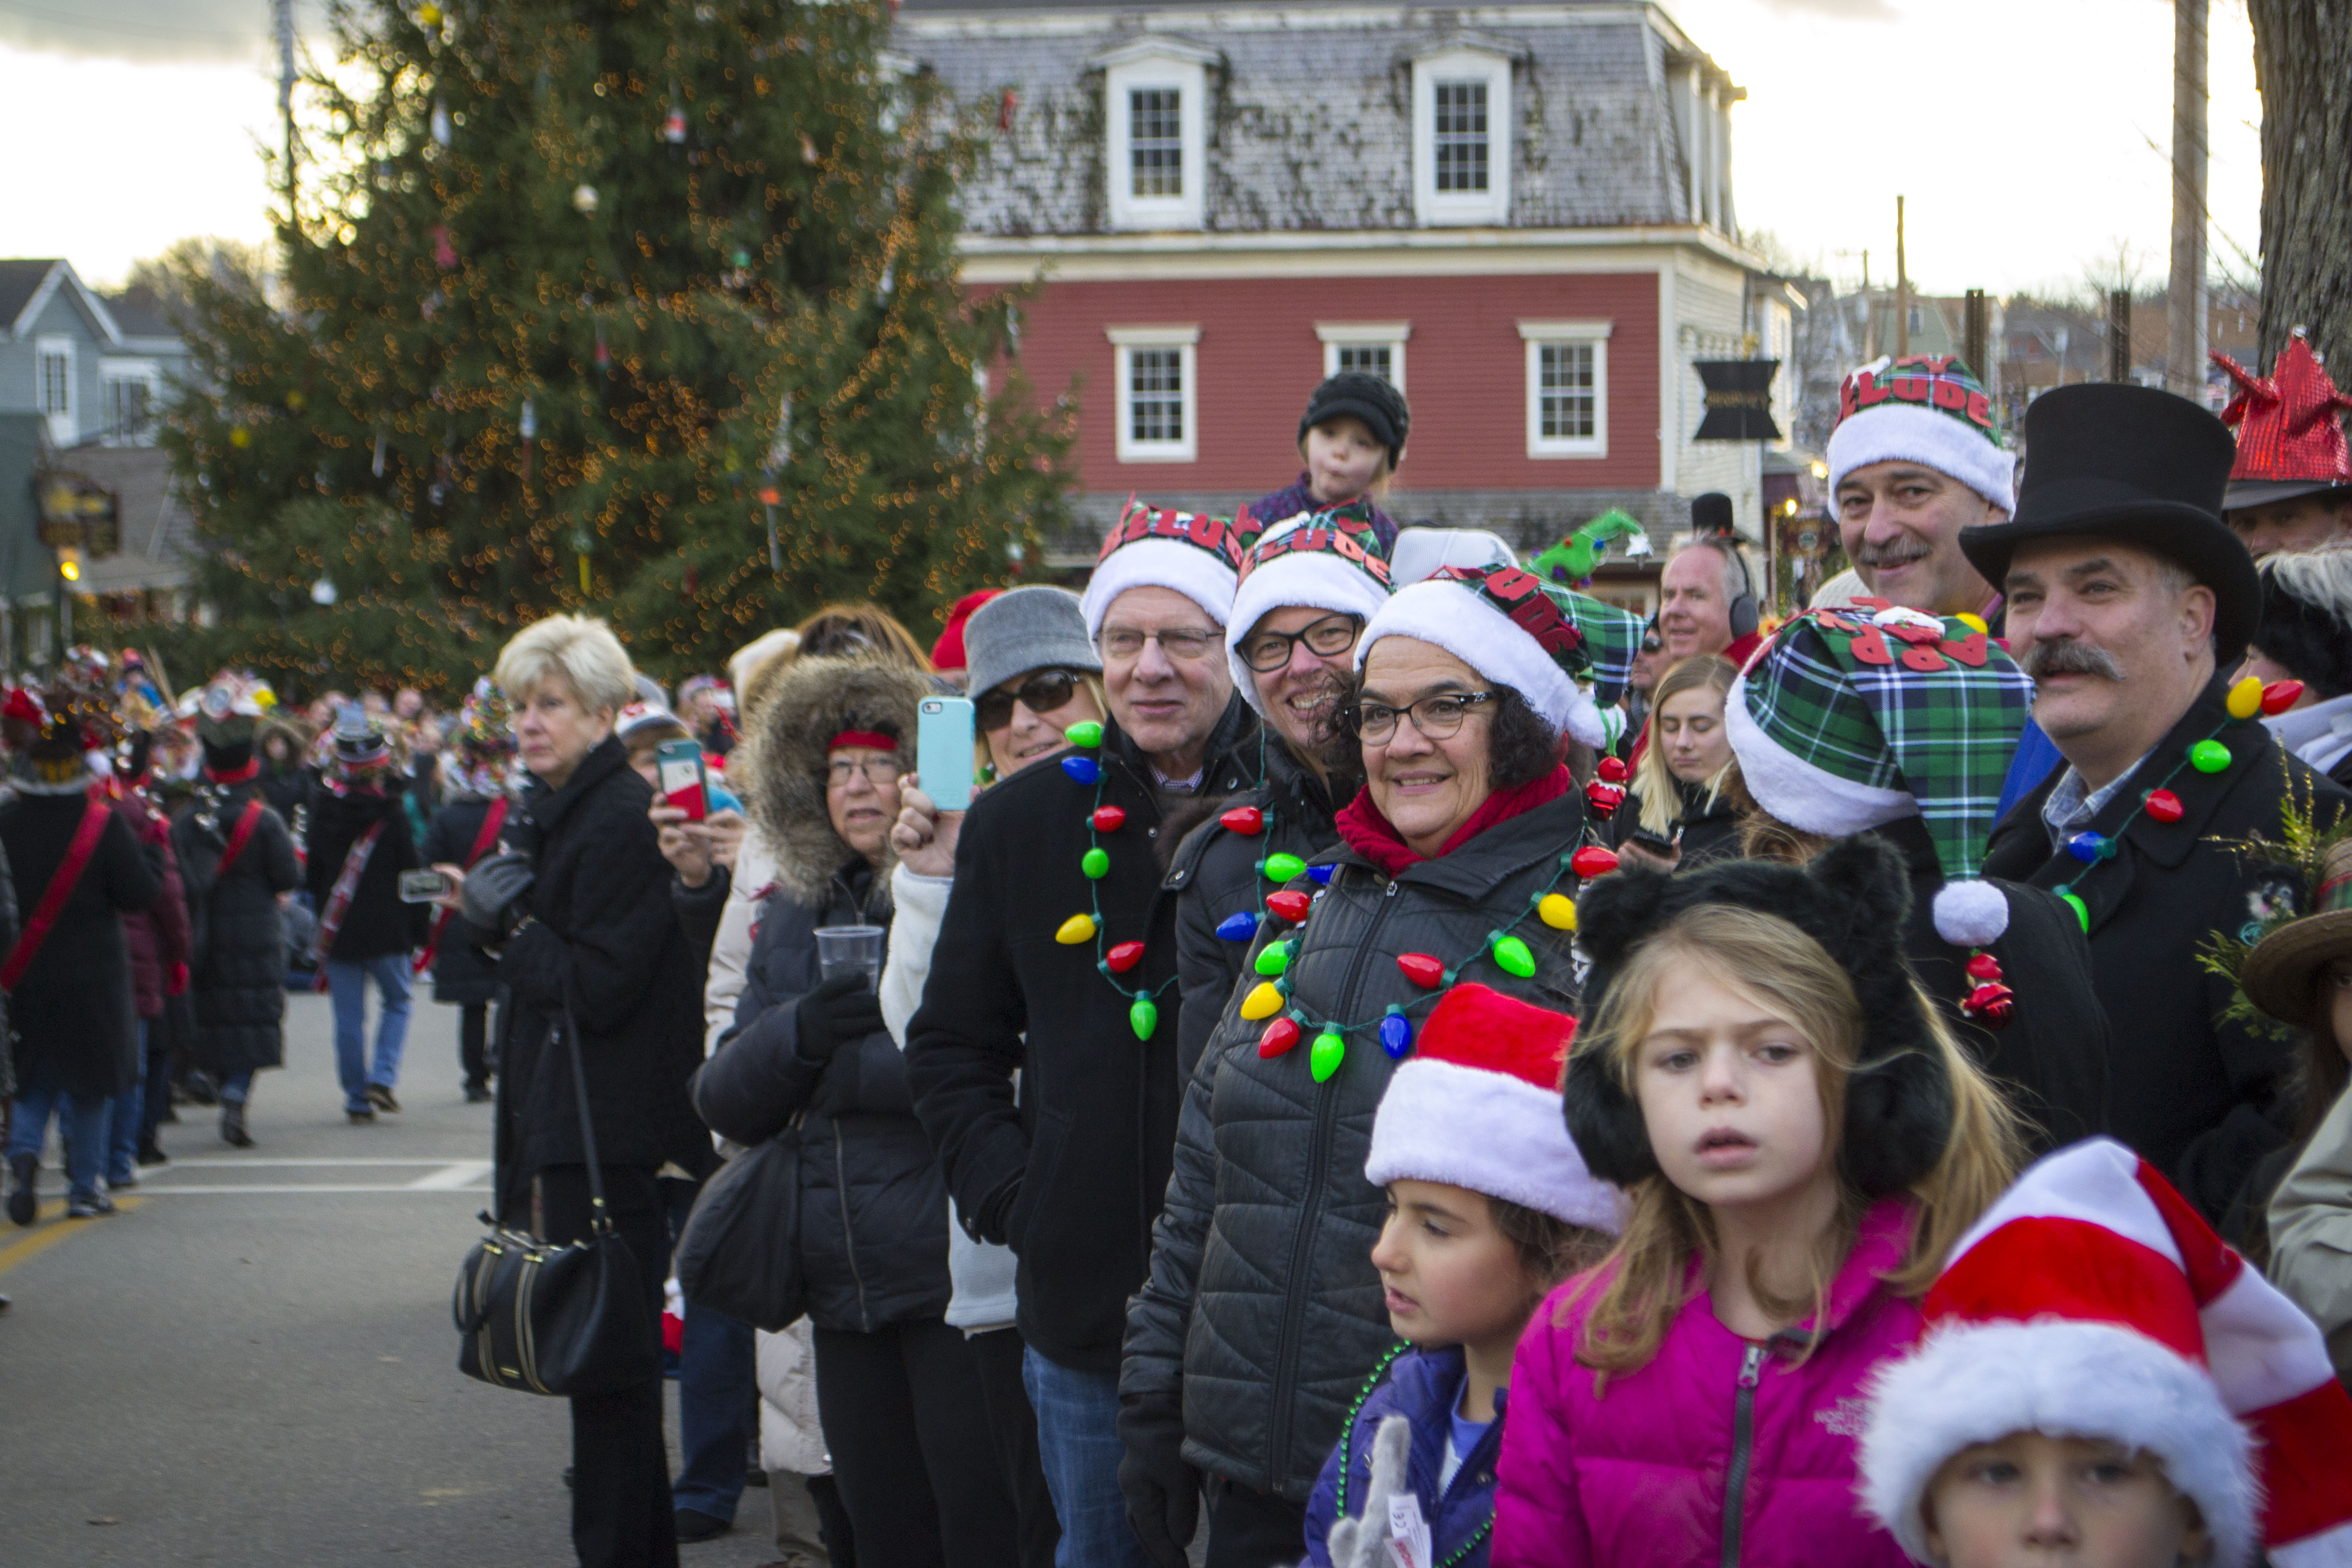 ALAN BENNETT/Journal Tribune. Spectators, hundreds of them, watch as the Hat Parade moves through Kennebunkport's Dock Square during Christmas Prelude on Saturday.